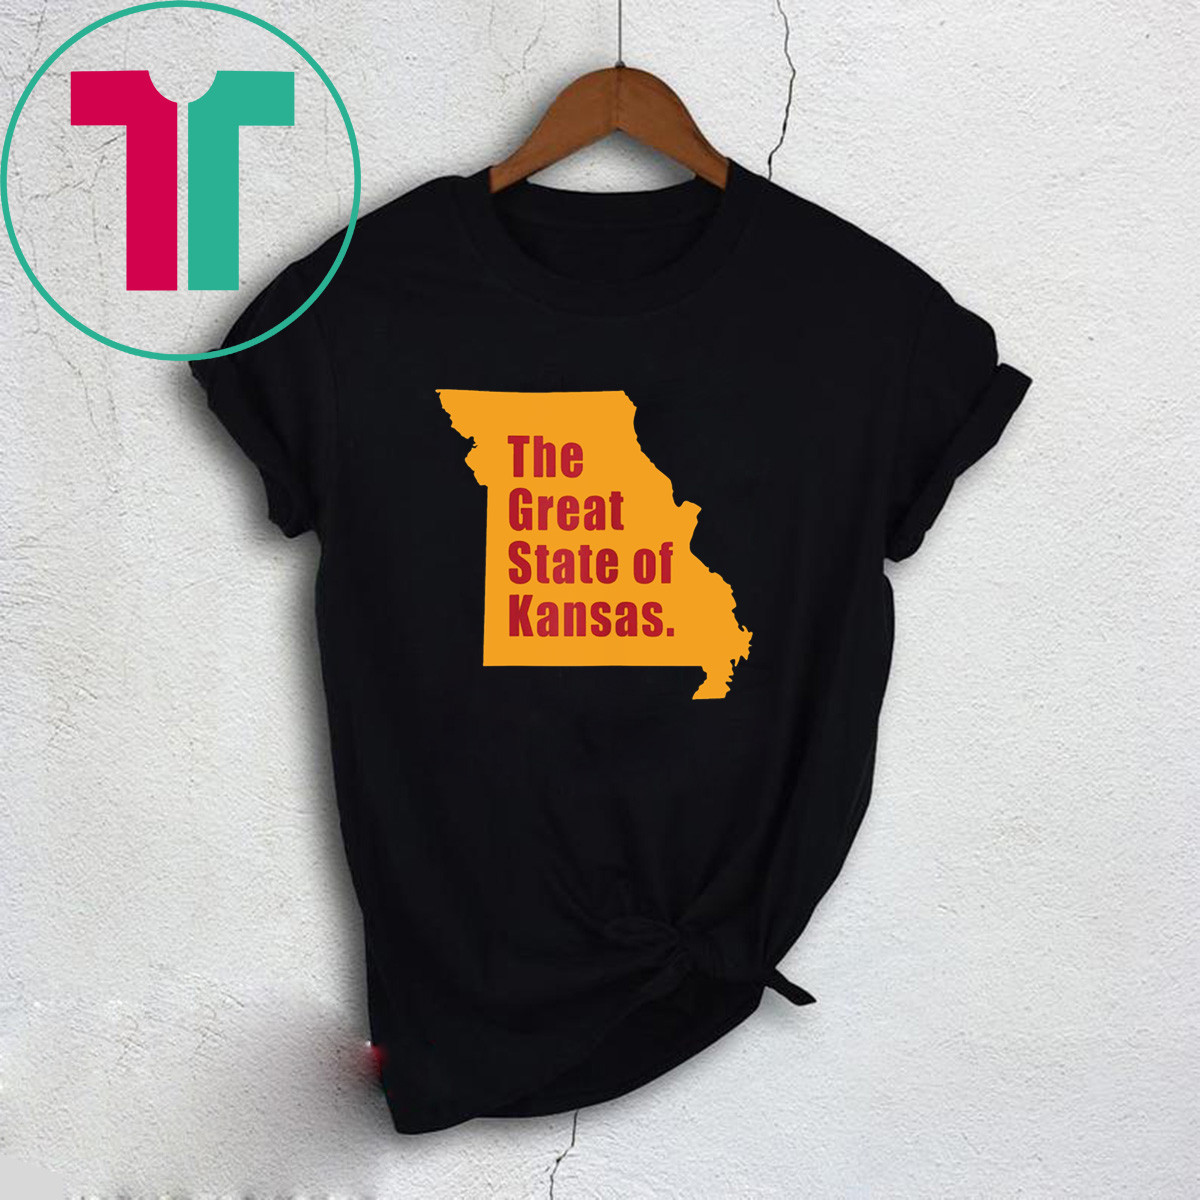 The Great State of Kansas Trump Tweet T-Shirt